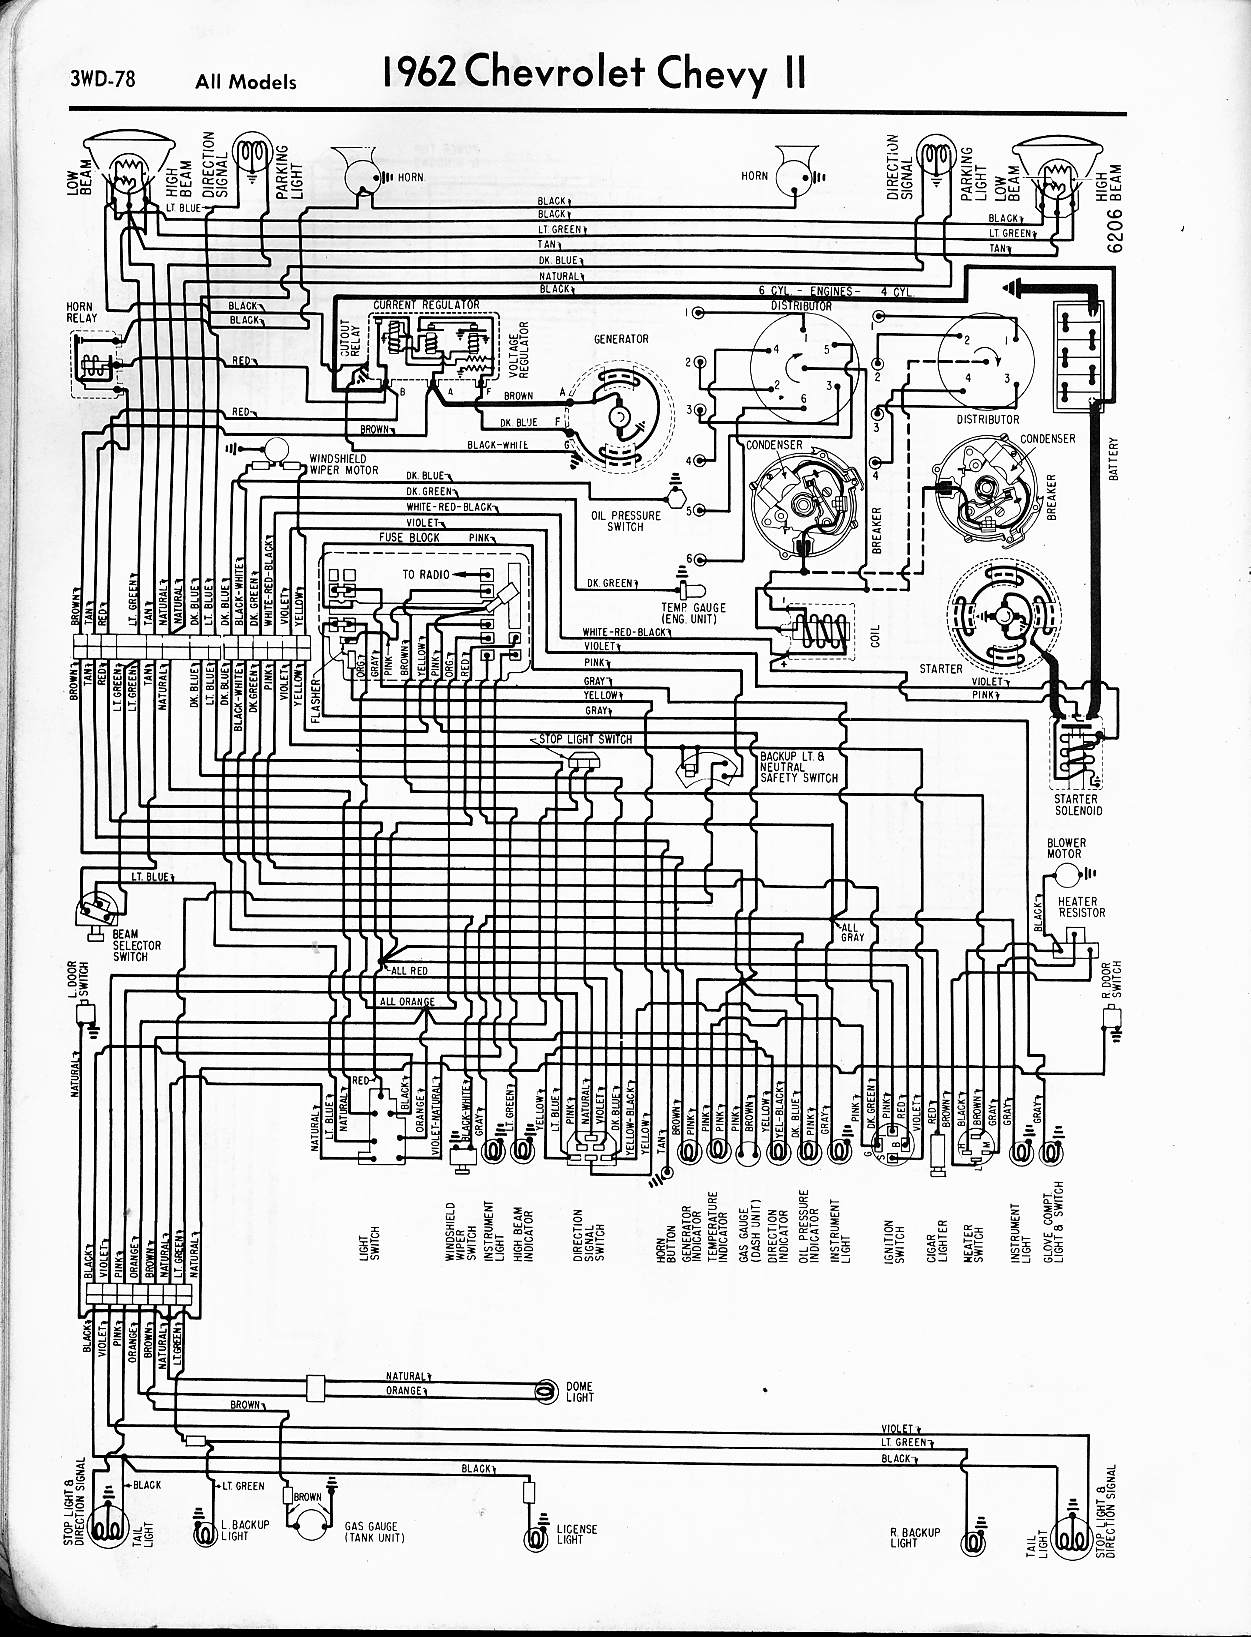 hight resolution of 57 65 chevy wiring diagrams 2007 chevy impala ignition wiring diagram 1962 chevy ii all